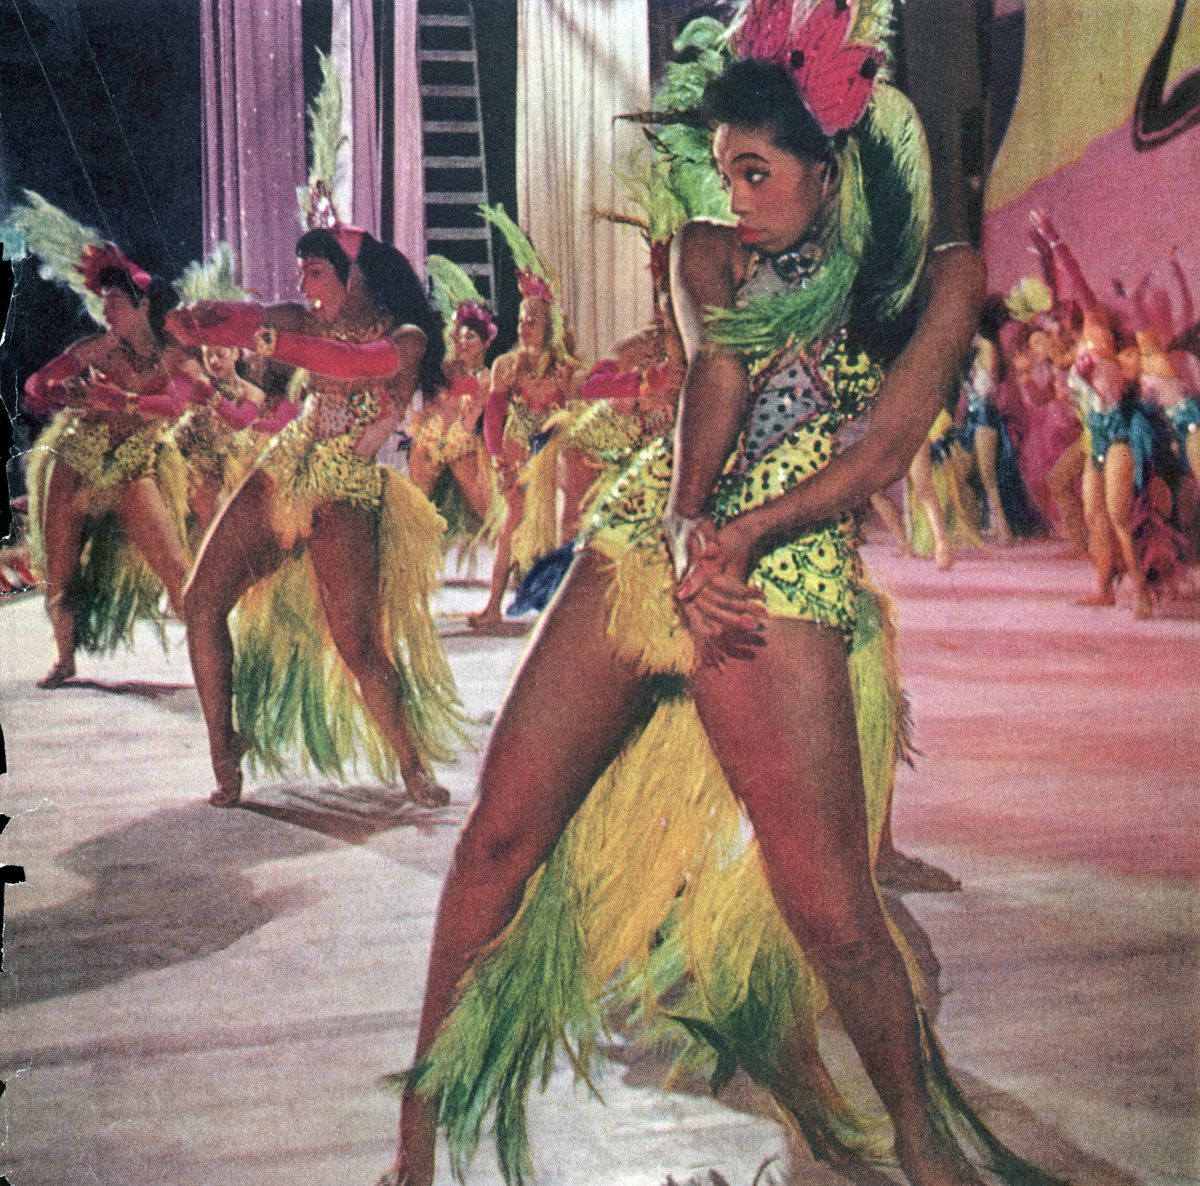 Slide 48 of 50: Showgirls dressed in colorful sequins and feathered corsets perform at the Moulin Rouge in 1955.